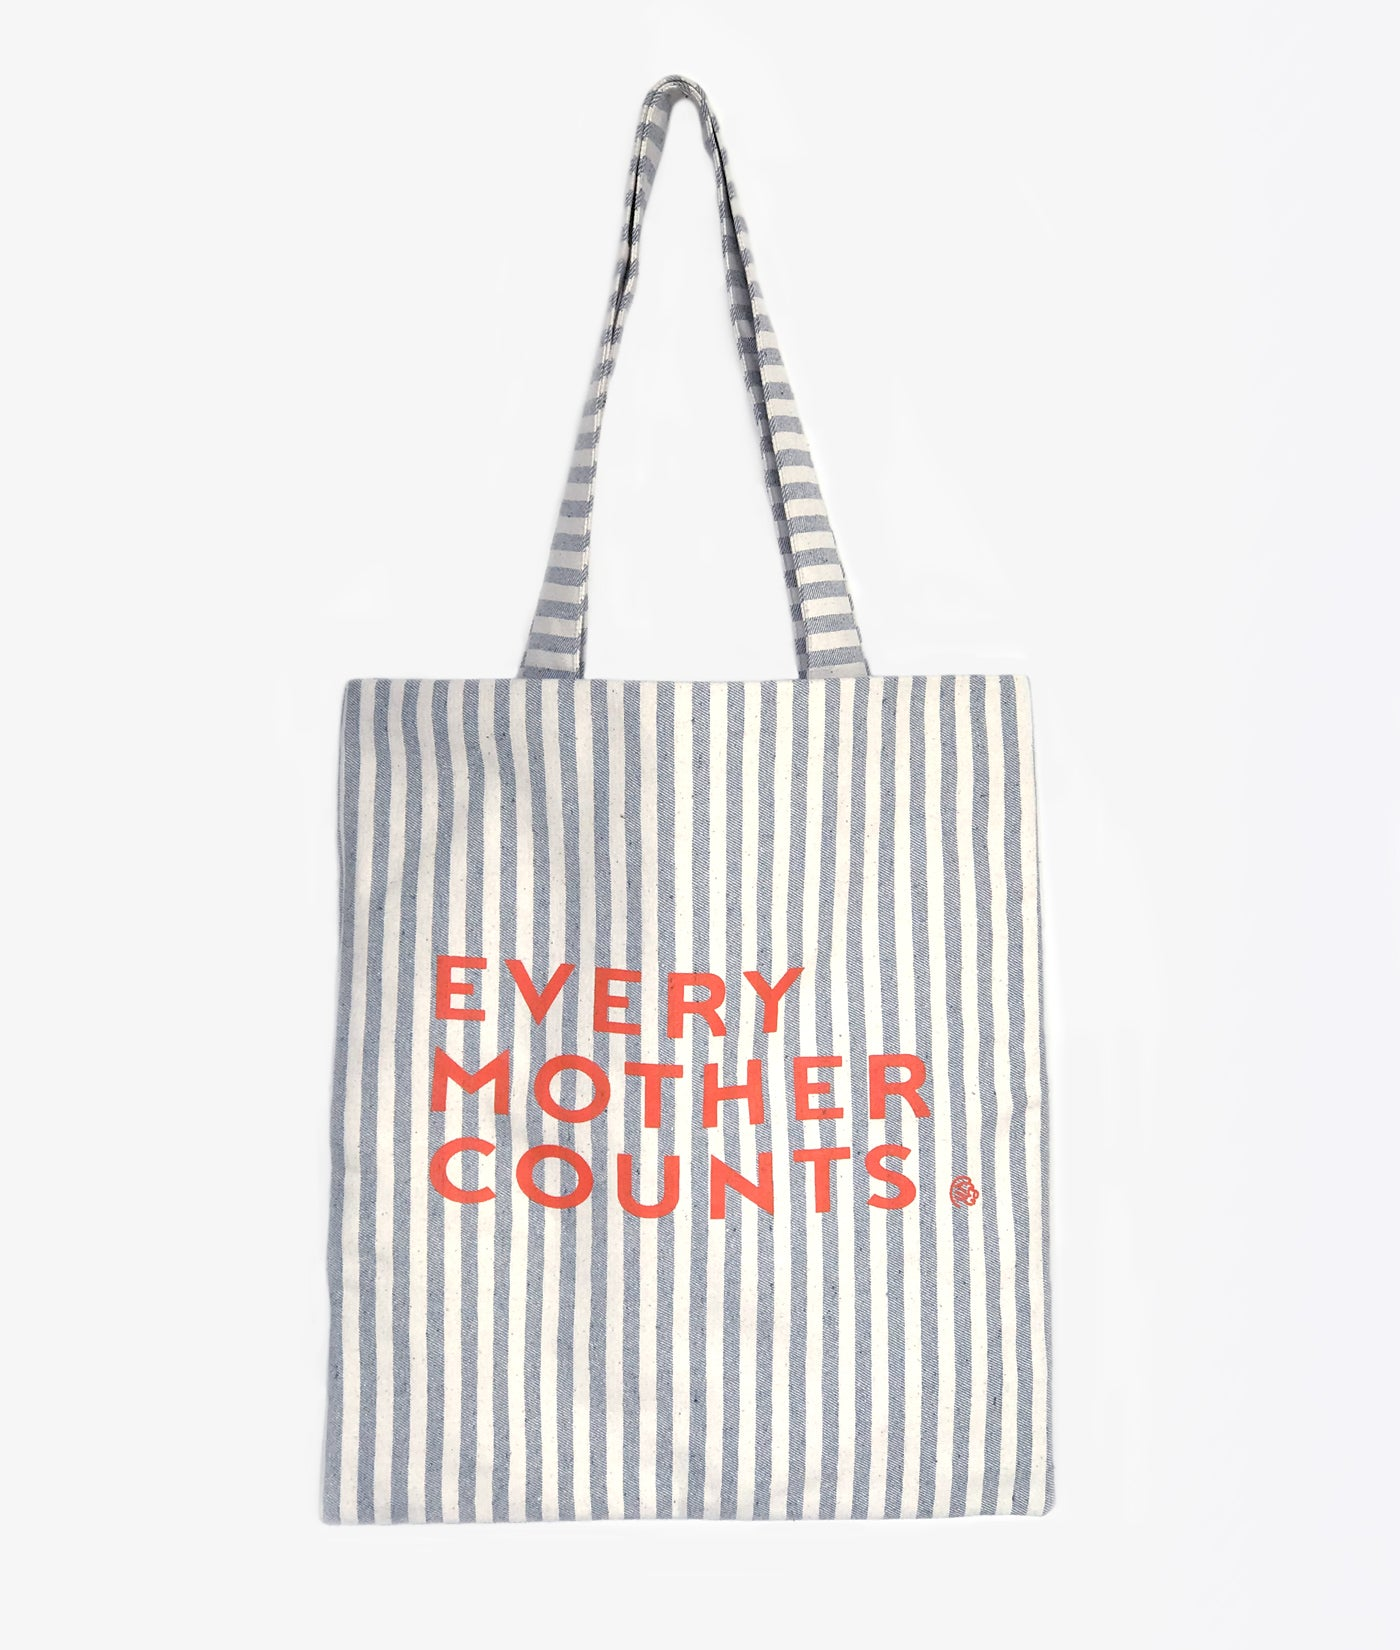 2c7f83c9c0 Every Mother Tote | Every Mother Counts | Industry of All Nations